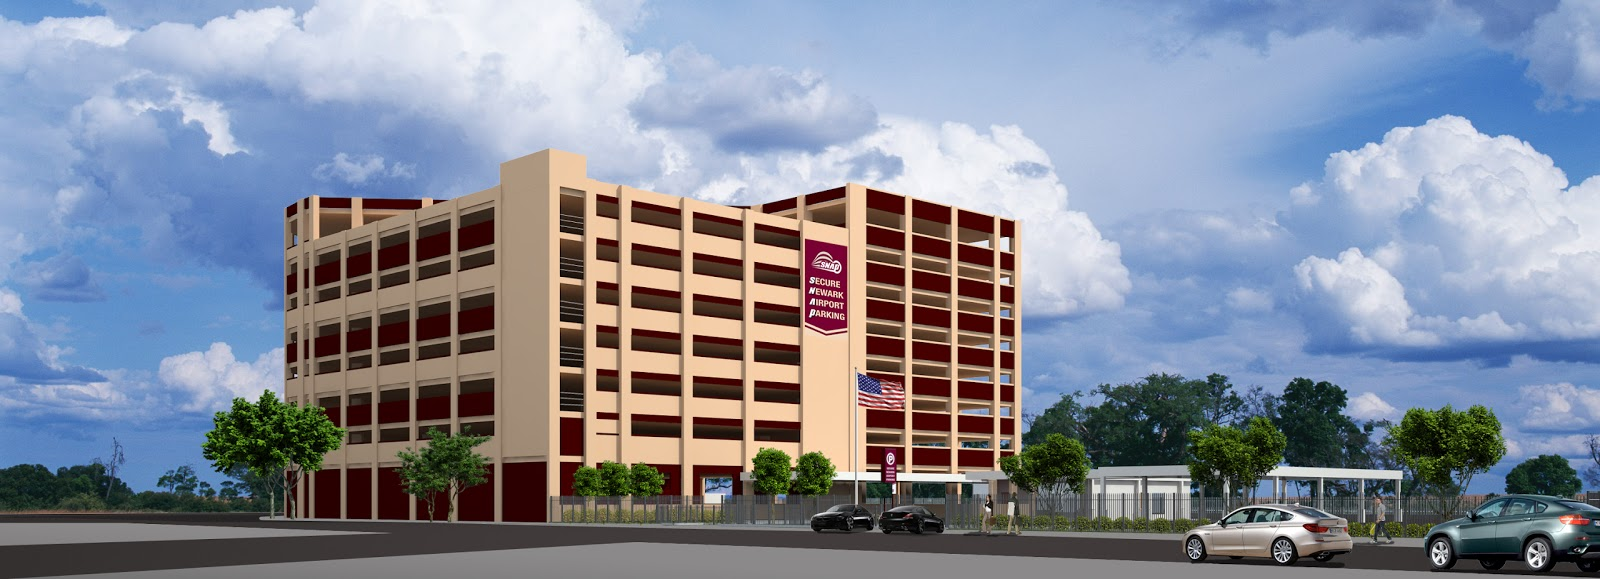 Two miles from Newark Liberty International Airport, SNAP Indoor Parking Garage's indoor parking garage sprawls across more than , square feet, overseen by licensed security personnel and more than 87 cemedomino.ml: $